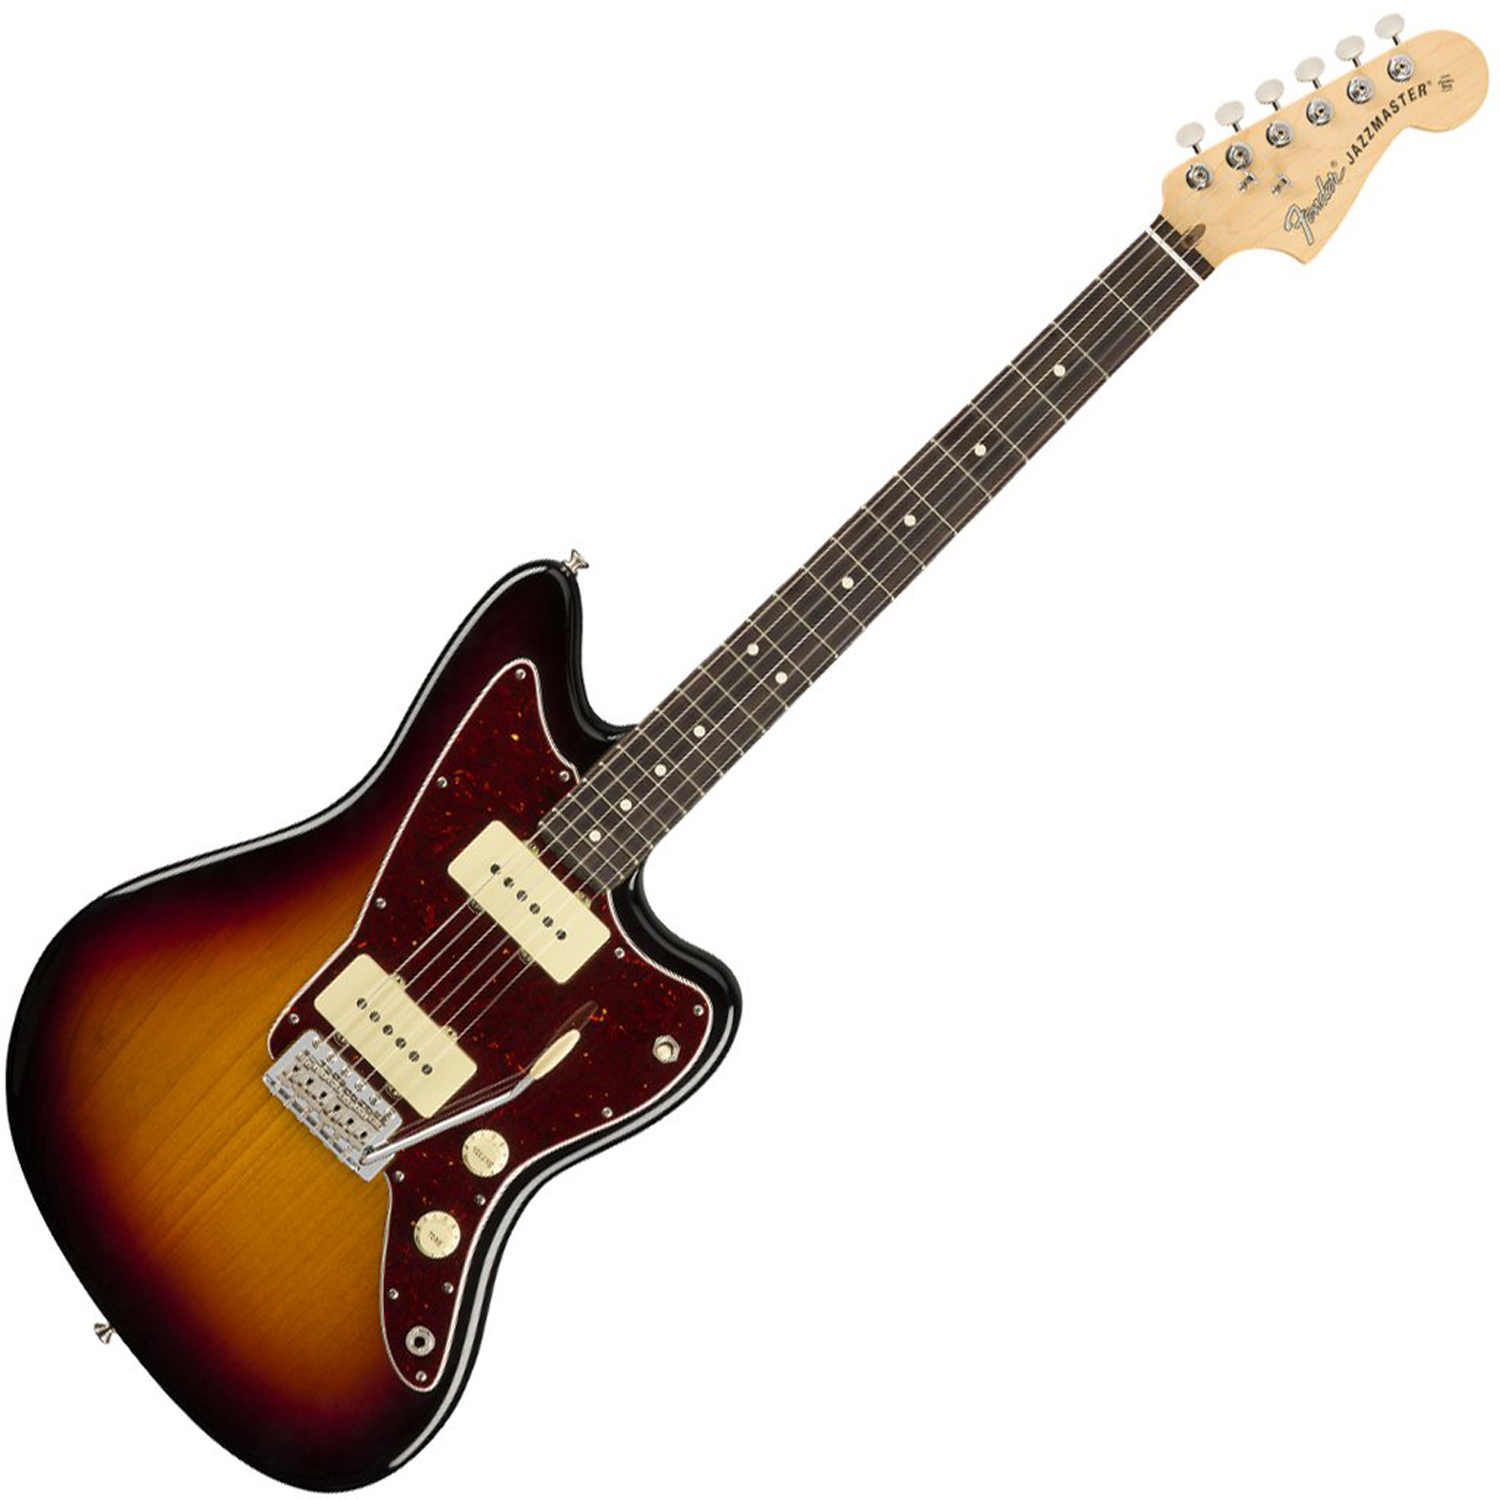 fender american performer jazzmaster 3 tone sunburst rosewood fretboard music machine. Black Bedroom Furniture Sets. Home Design Ideas